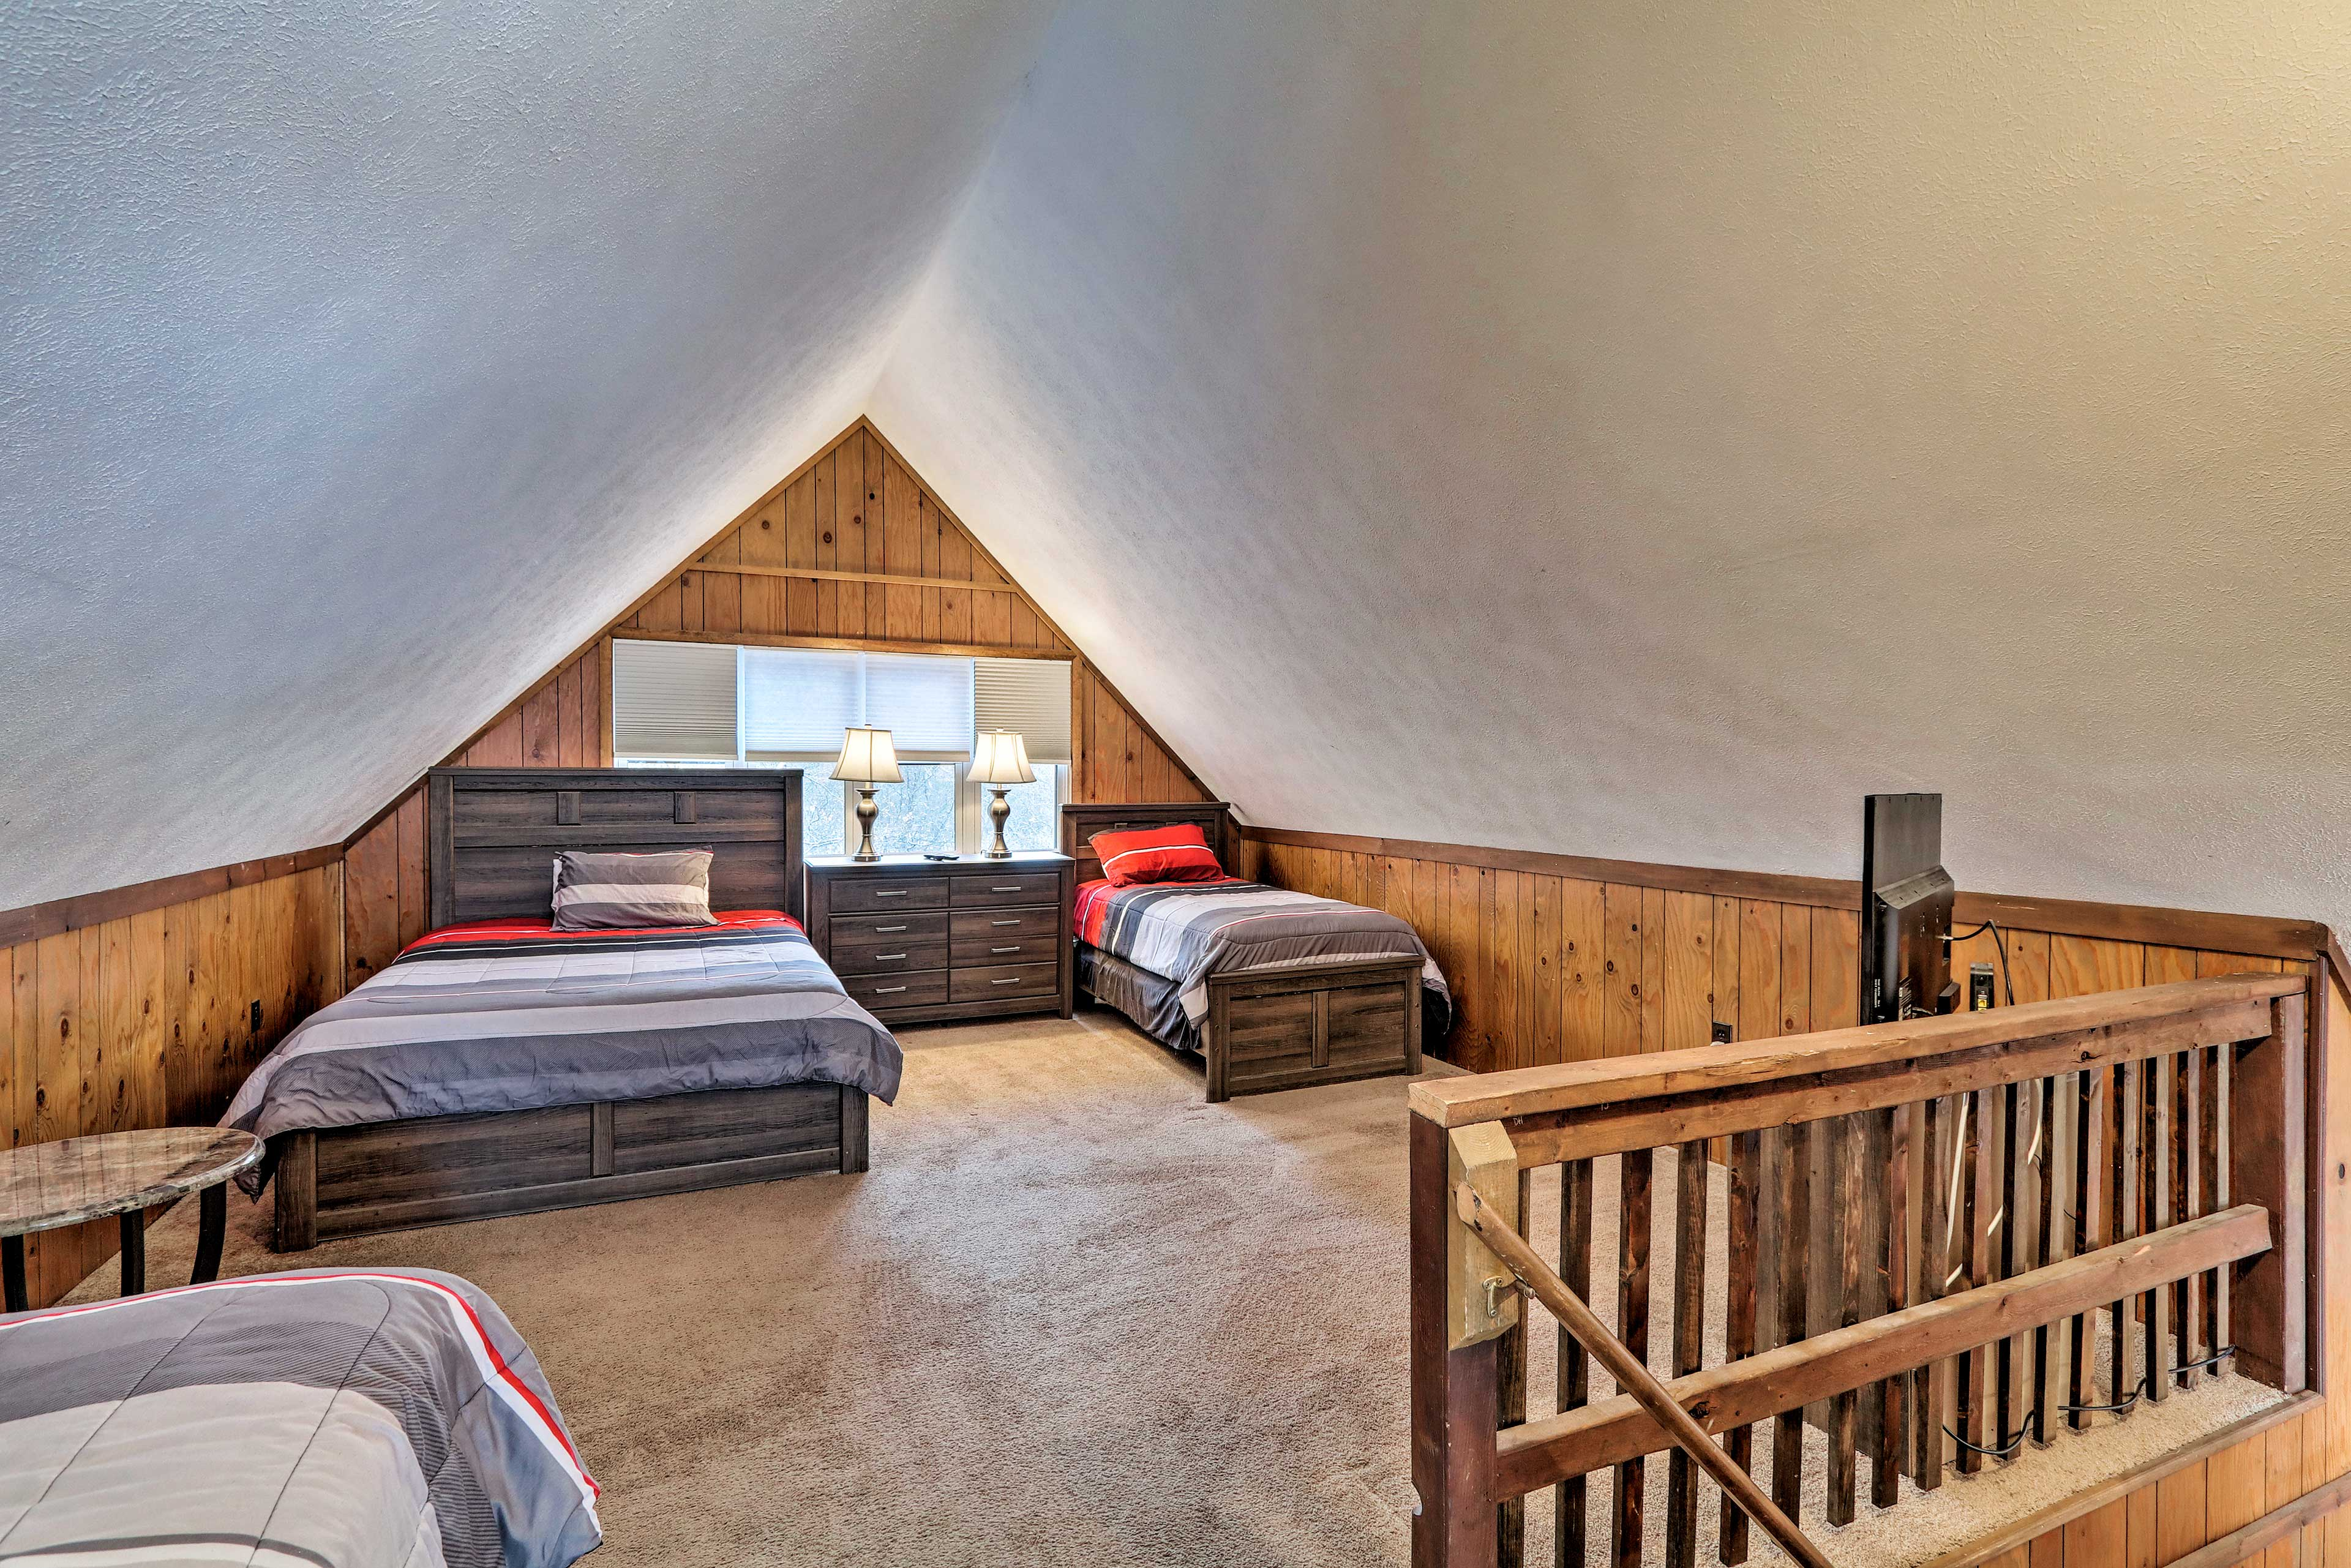 This loft has a queen bed and 2 full beds.